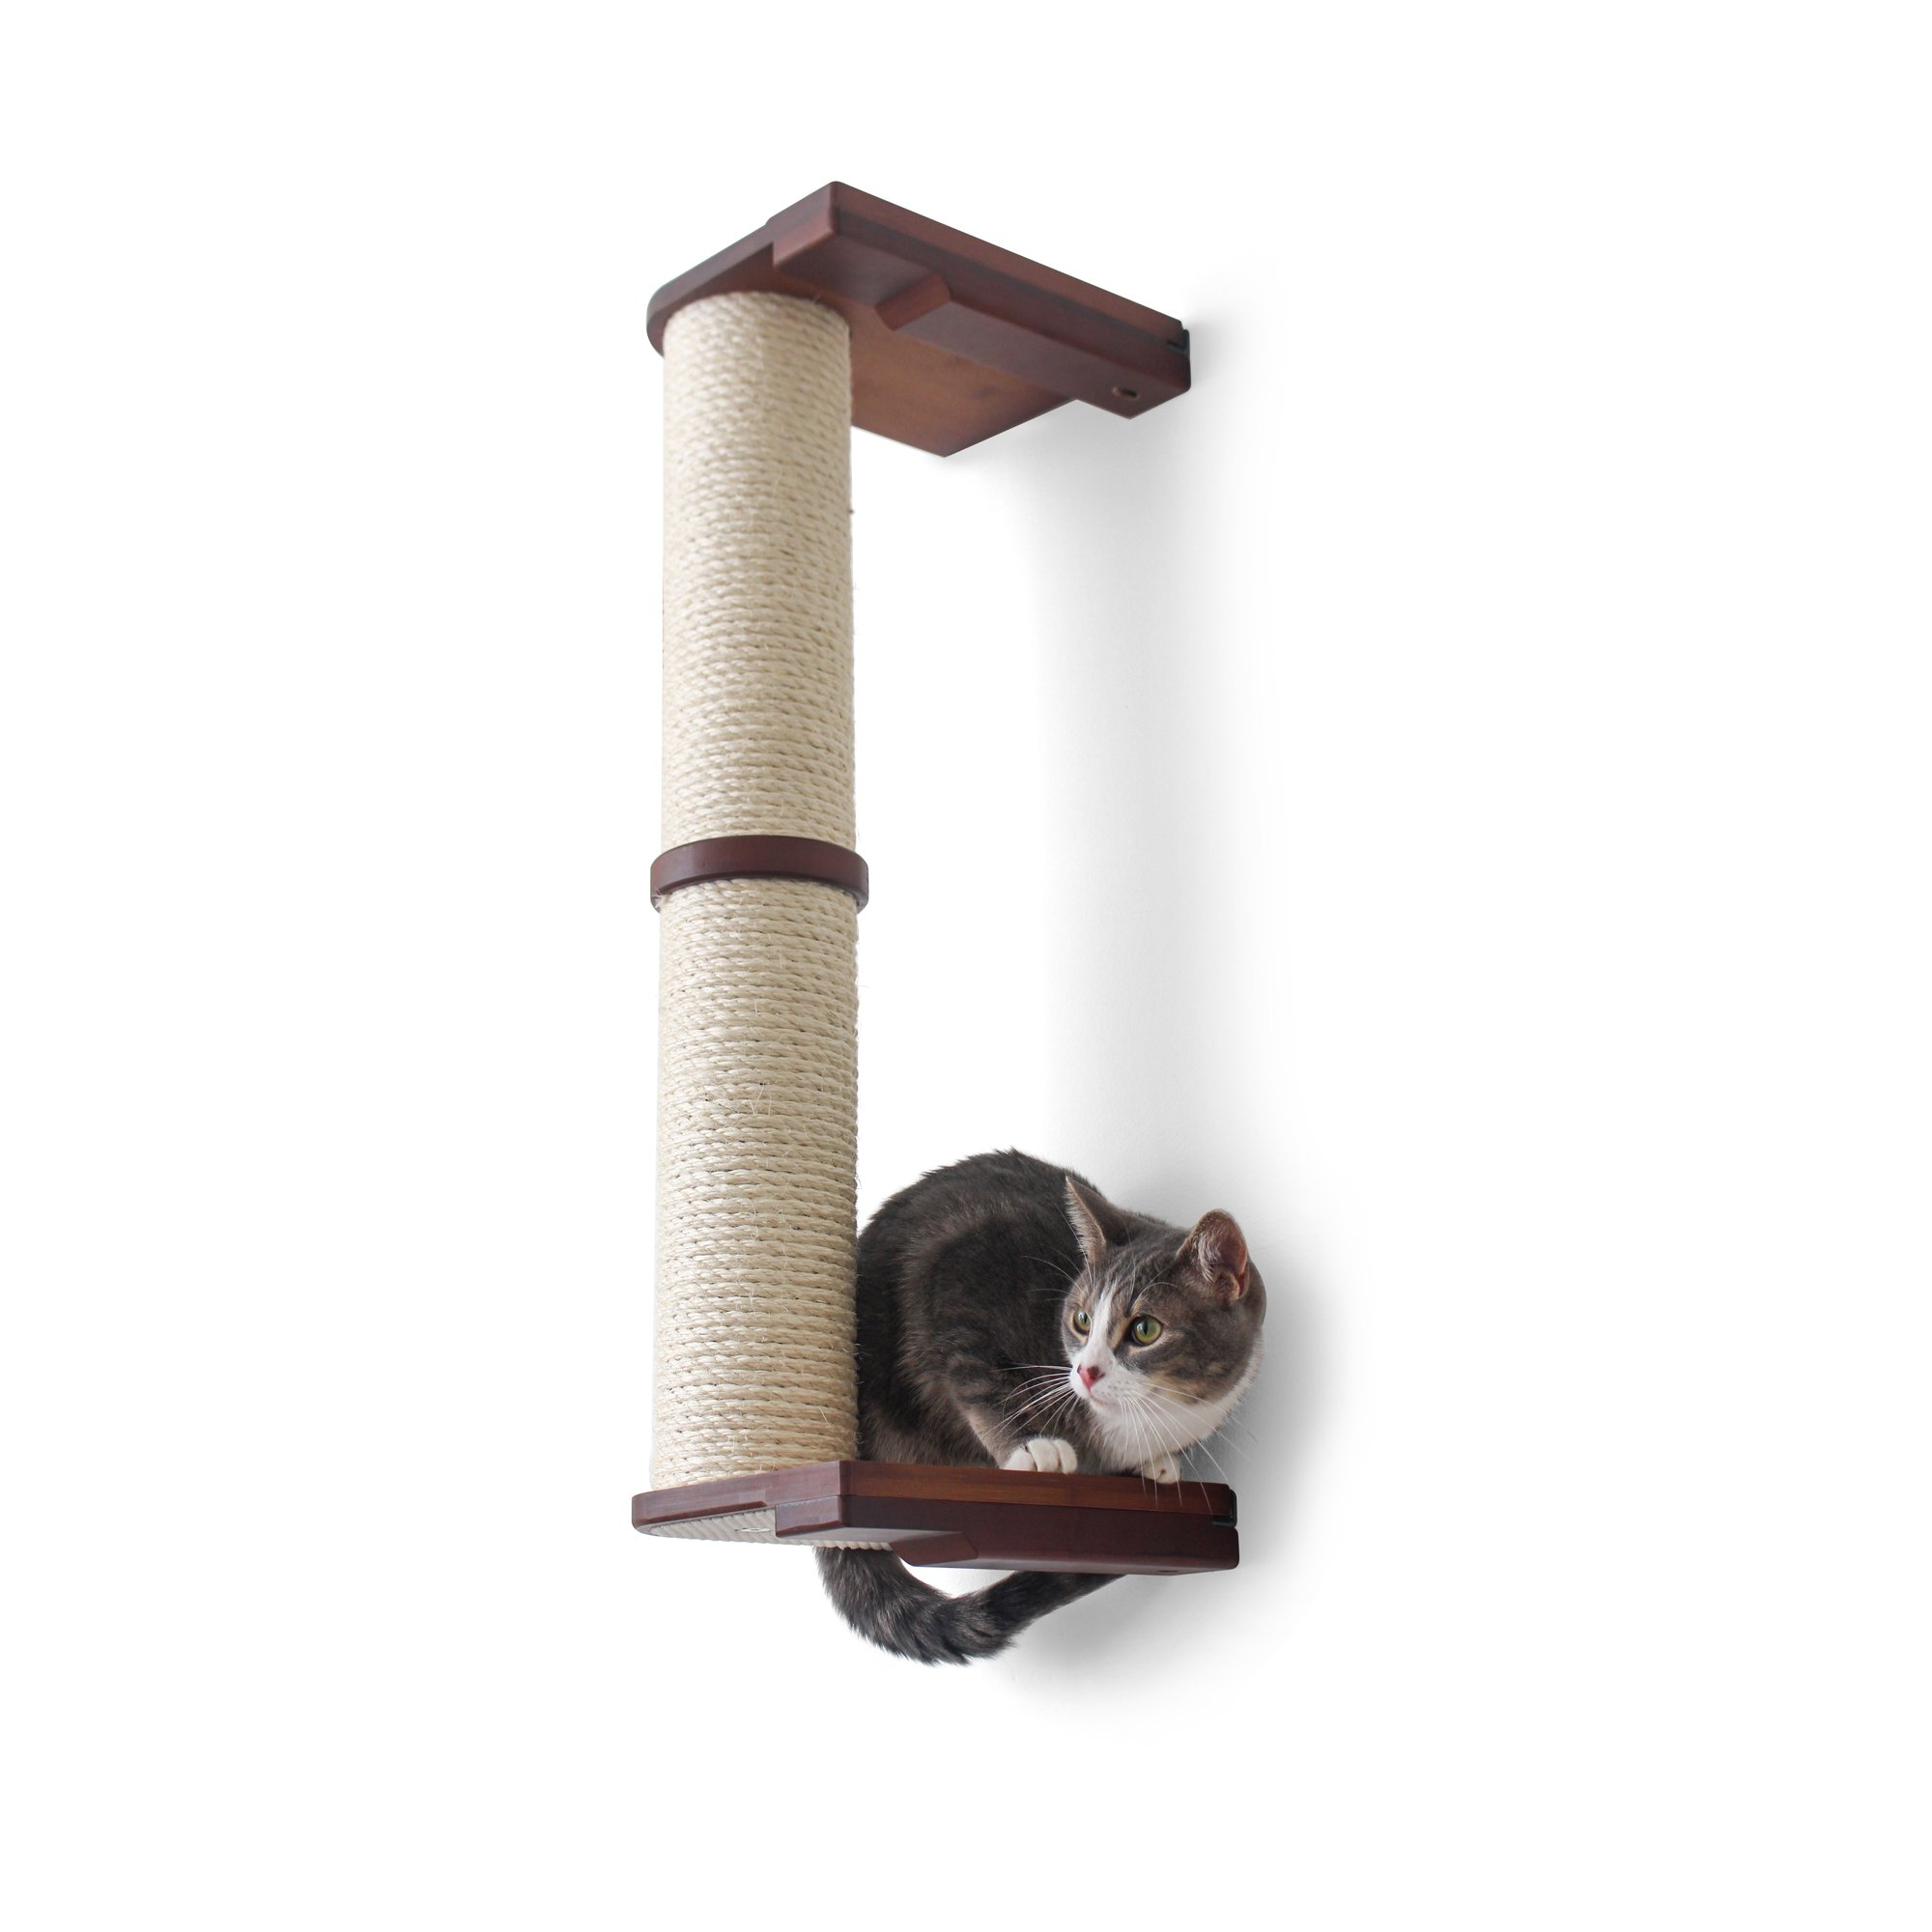 """Catastrophicreations The Cat Mod 28"""" Wall Mounted Sisal Pole For Cats In English Chestnut, 8 In W X 33 In H, 16 Lb"""